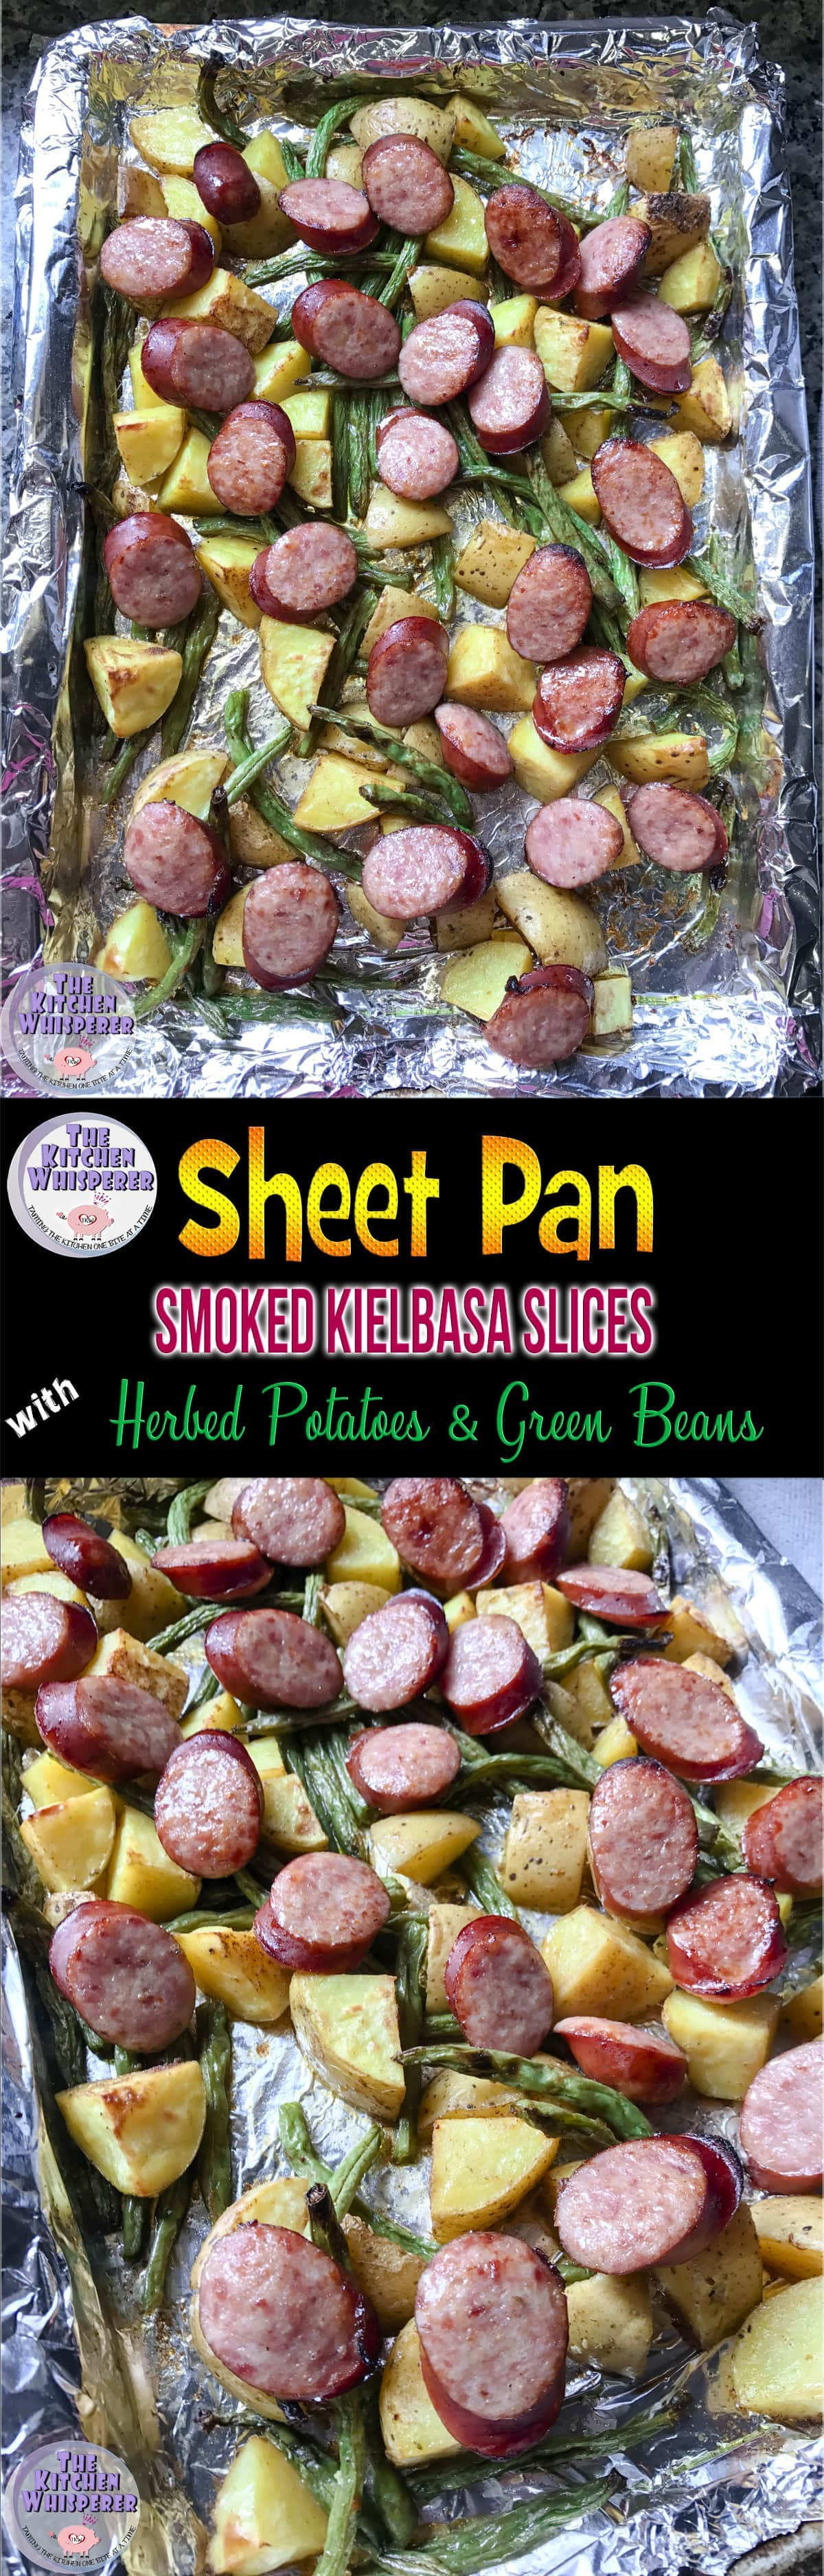 Sheet Pan Smoked Kielbasa, potatoes and green beans